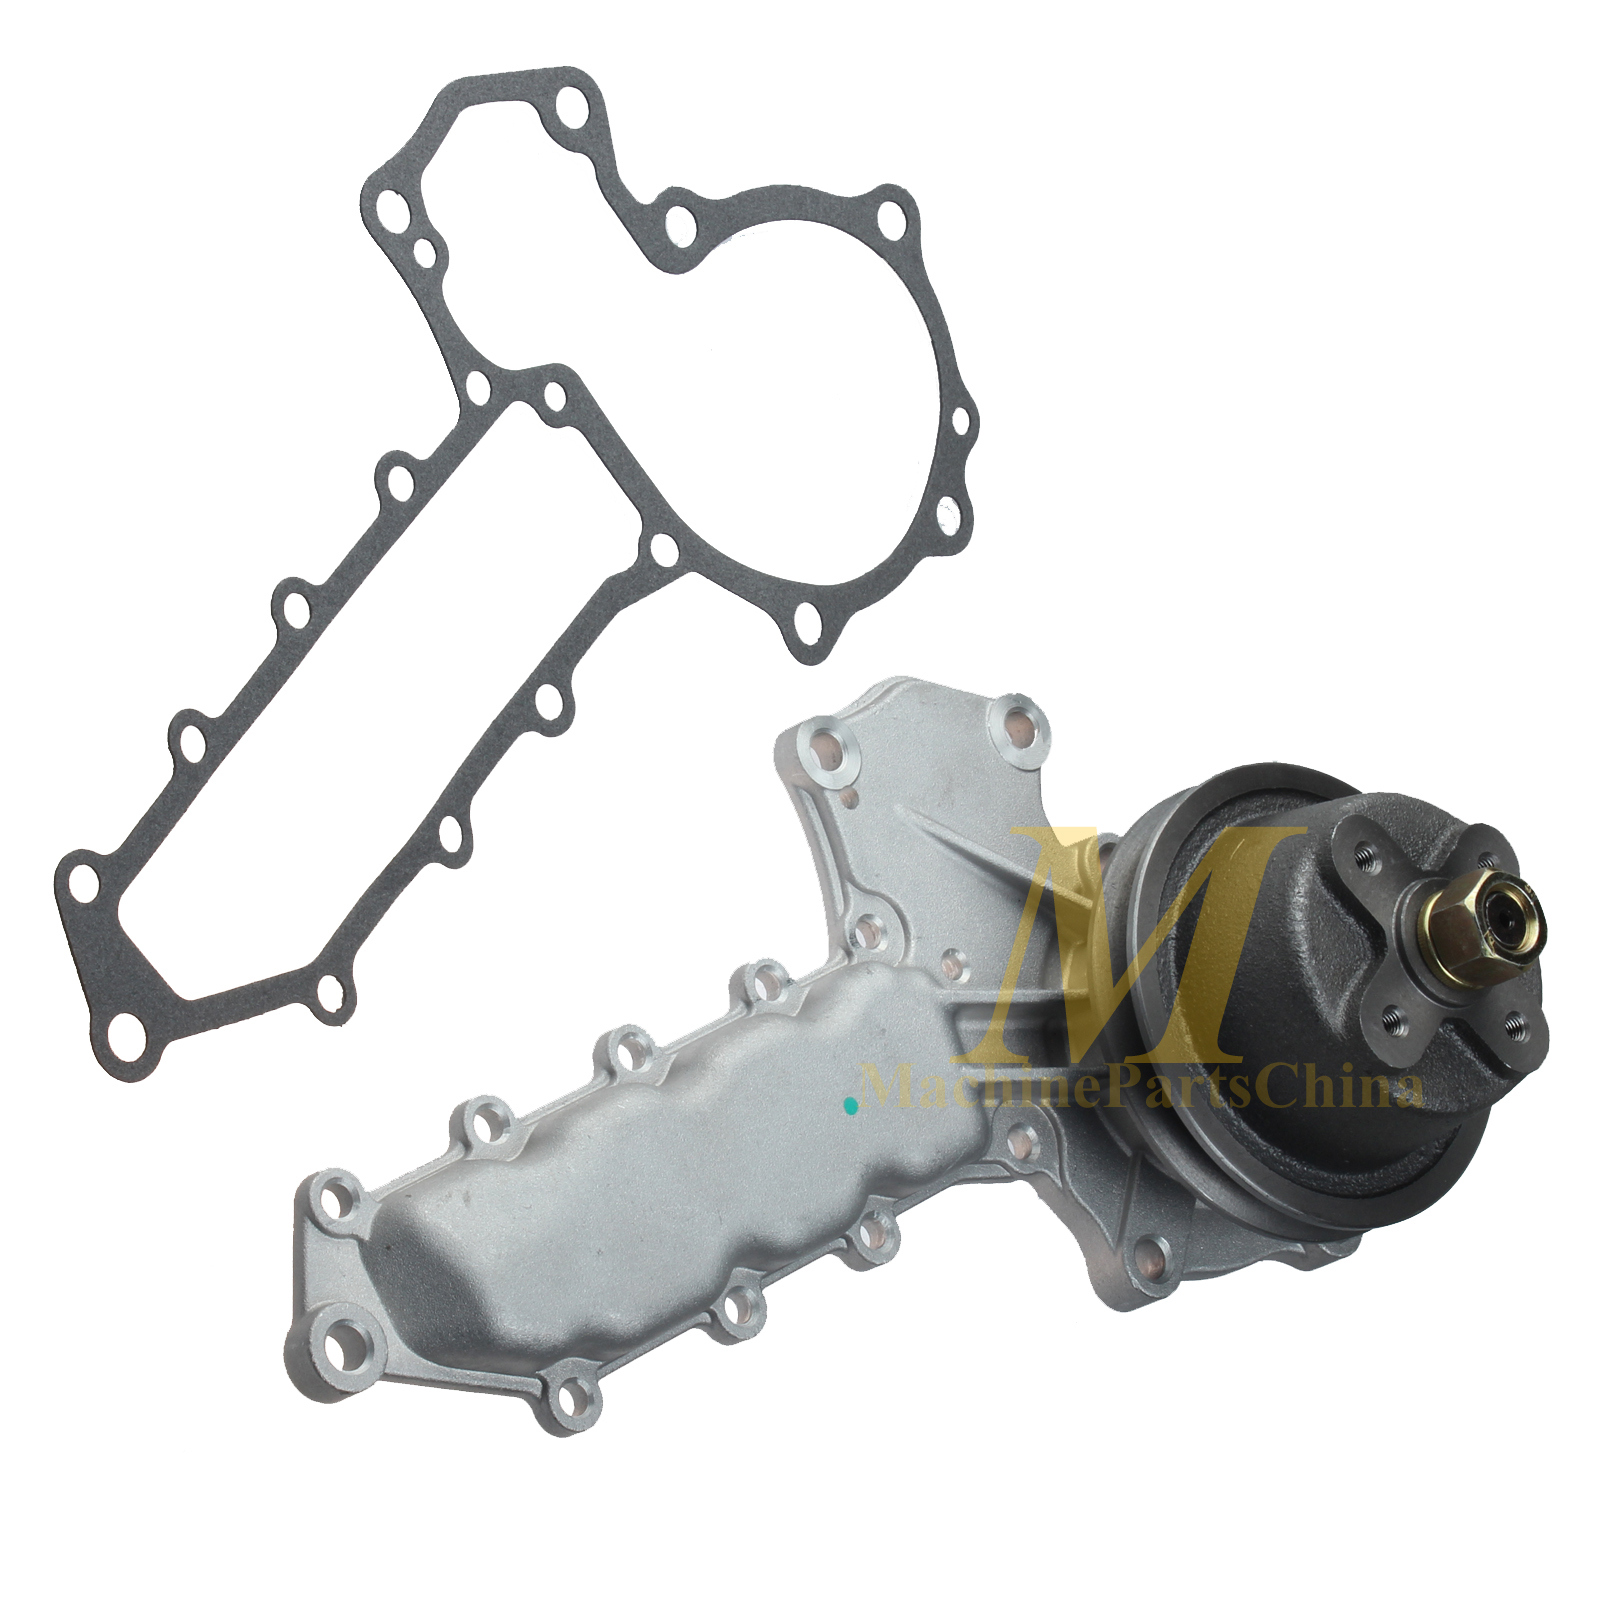 hight resolution of compare 44 second hand ads l245dt water pump for kubota l245 l245dt l245f l245h l295 l295dt